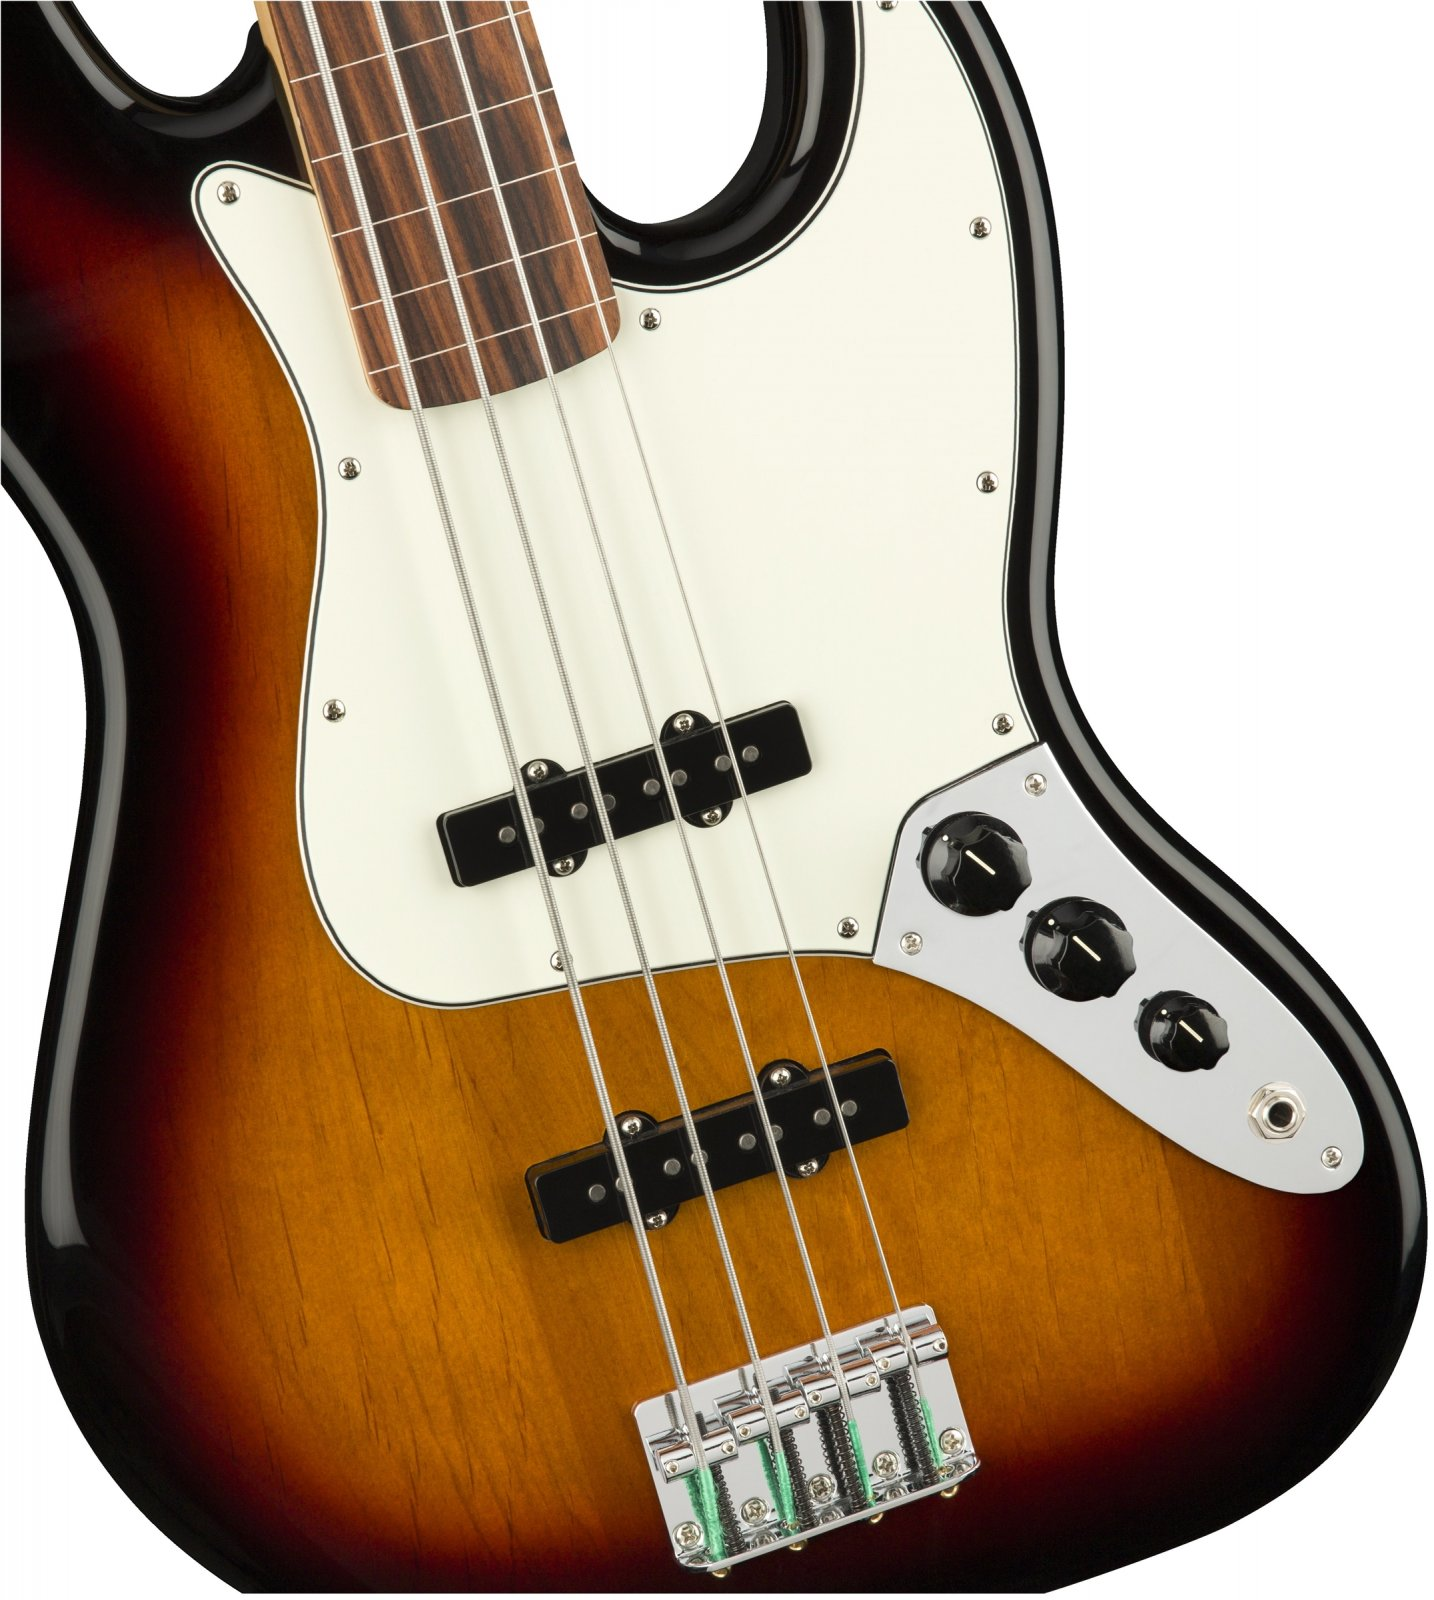 Fender Standard Jazz Bass Fretless - Brown Sunburst w/ Pau Ferro Fingerboard